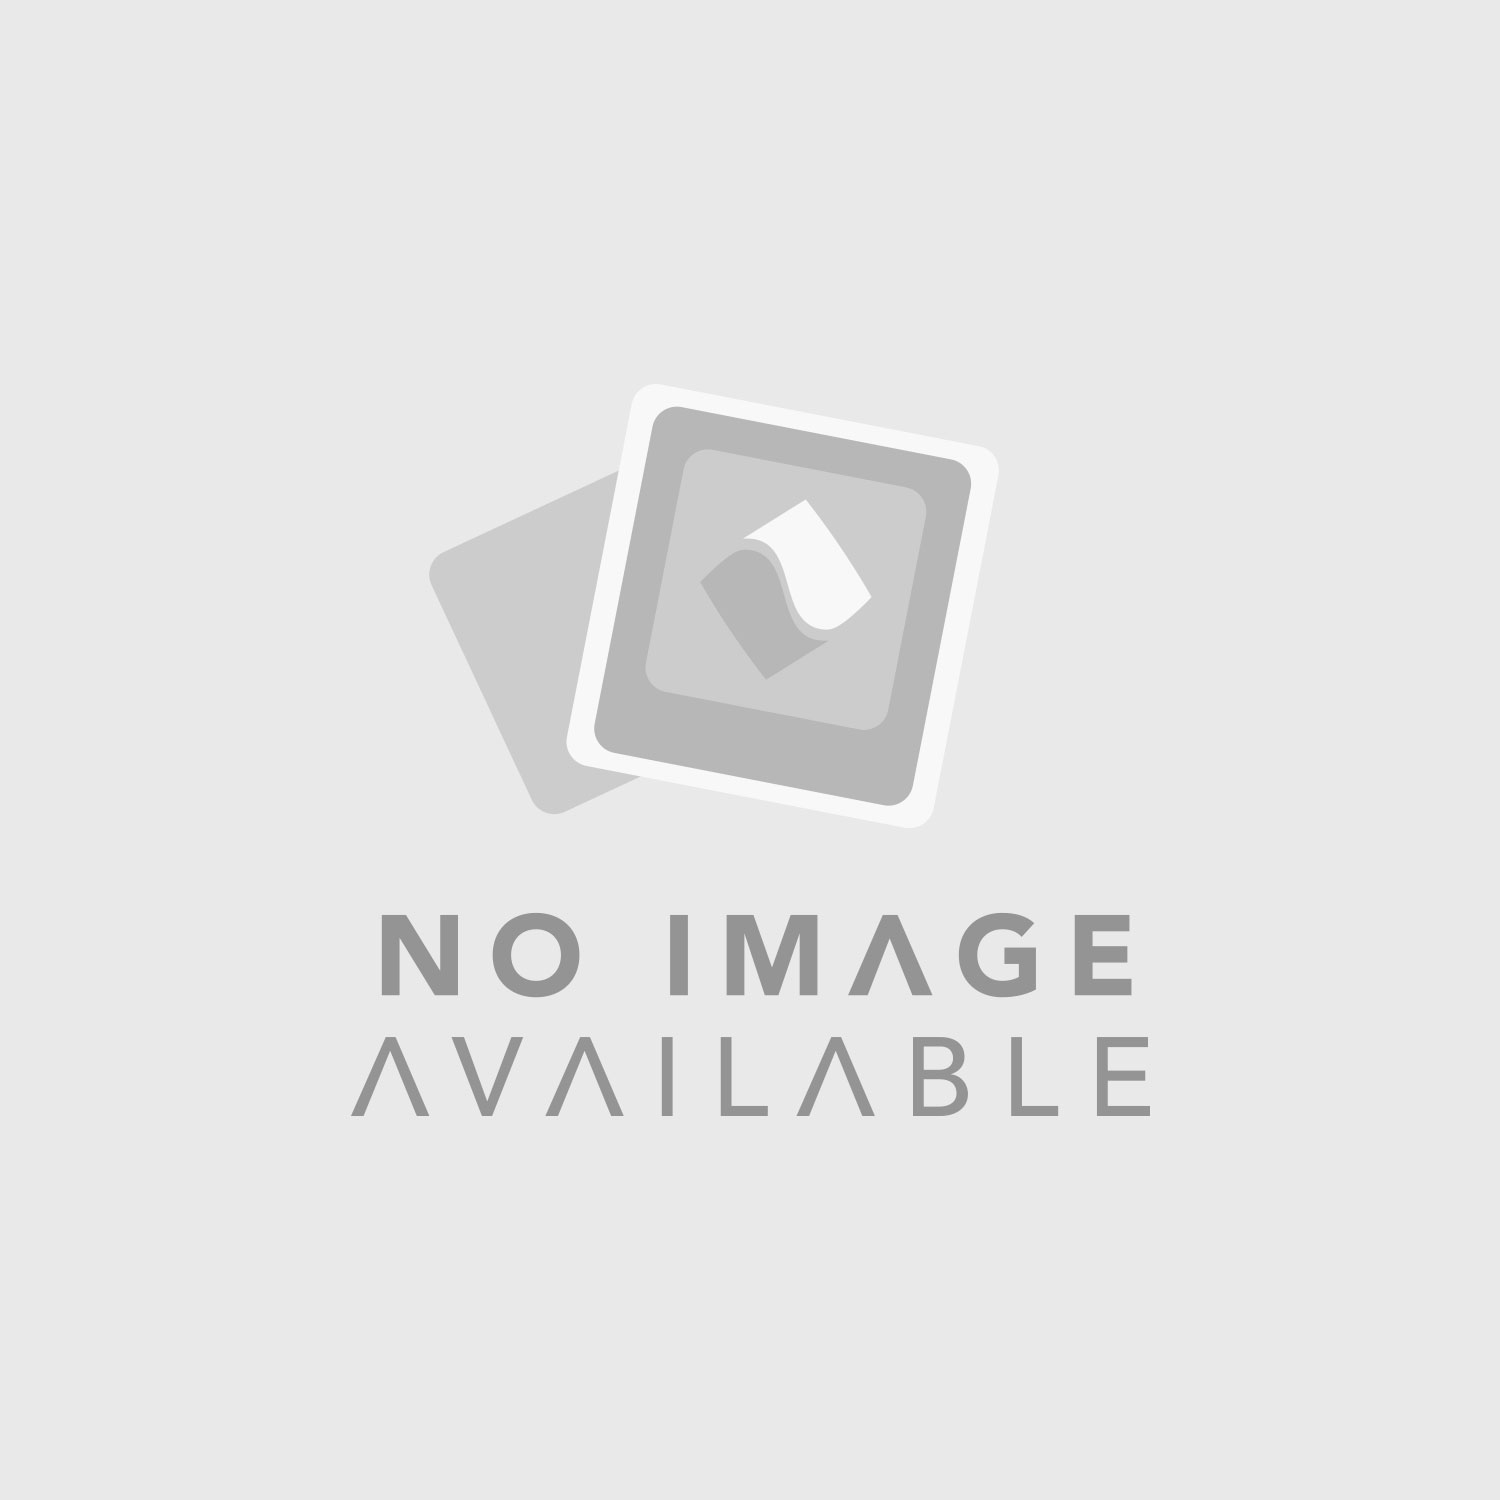 Rode RodeCaster Pro Ultimate 2 Guest Podcasting Bundle with PD-70 Mics (Compass Boom Arms)